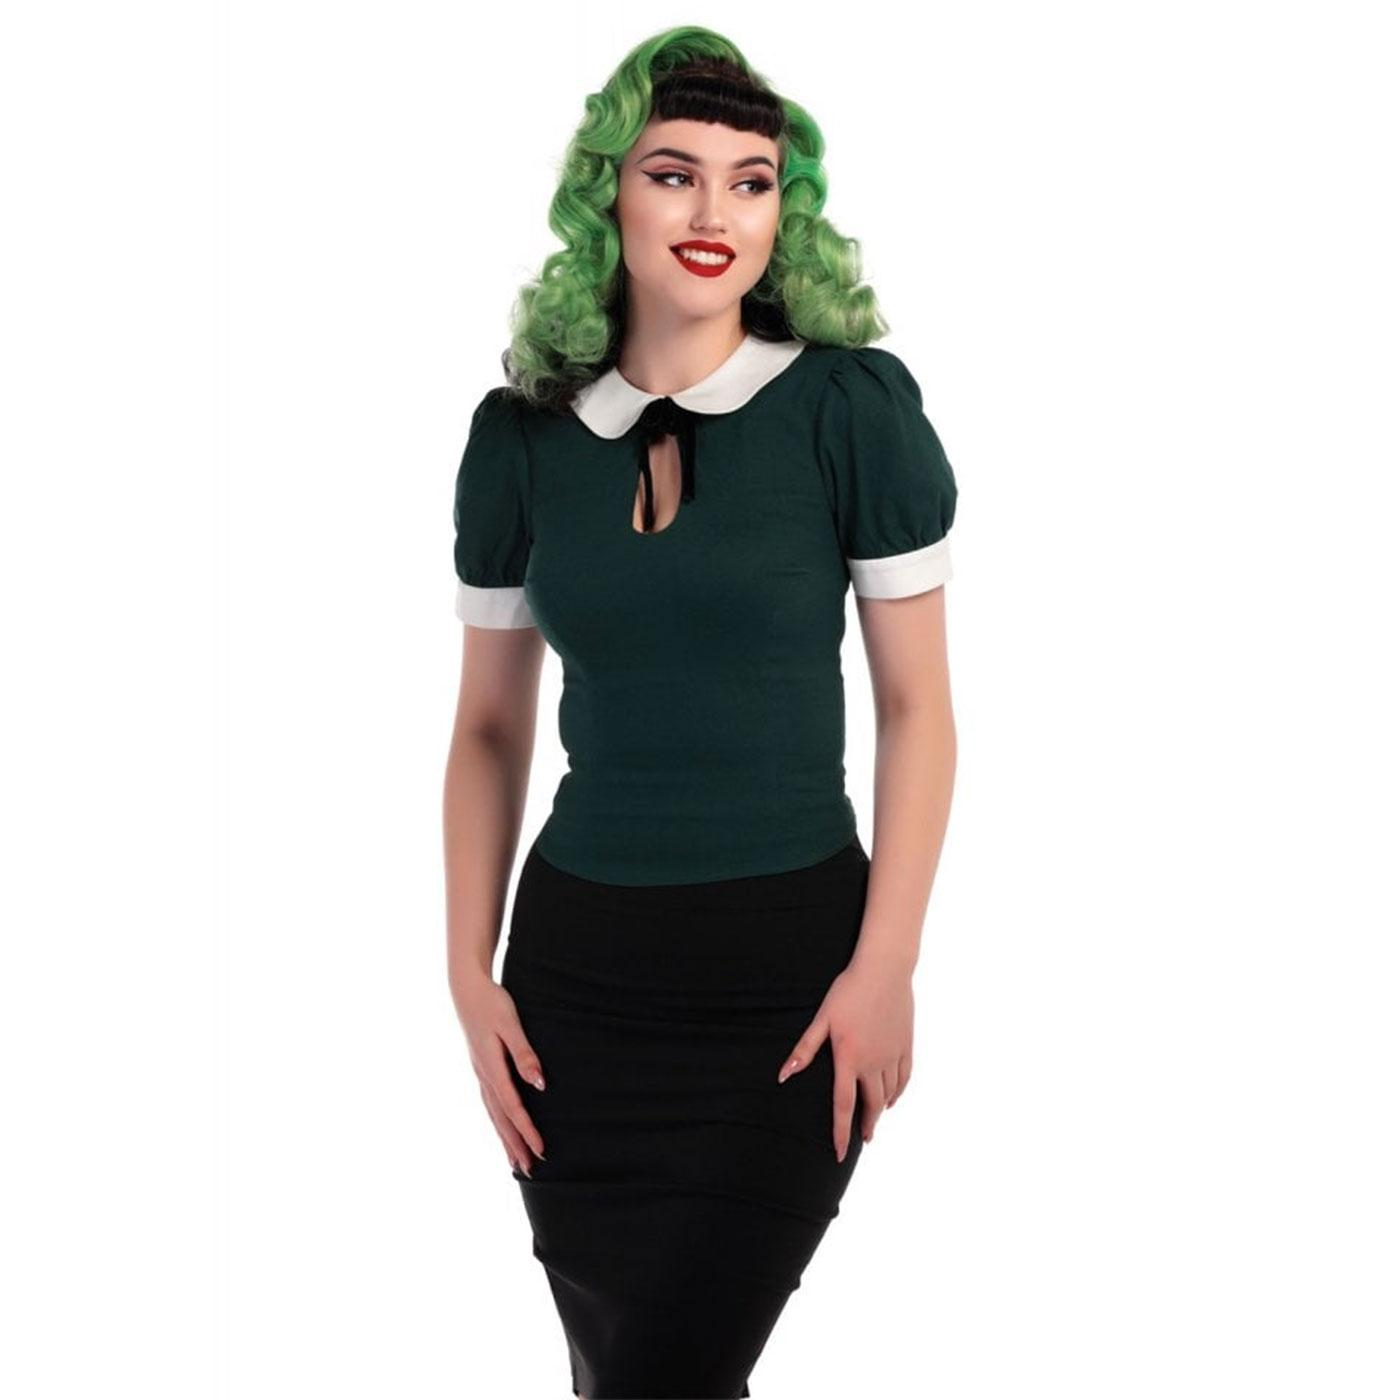 Khloe COLLECTIF Retro Keyhole Peter Pan Top Green